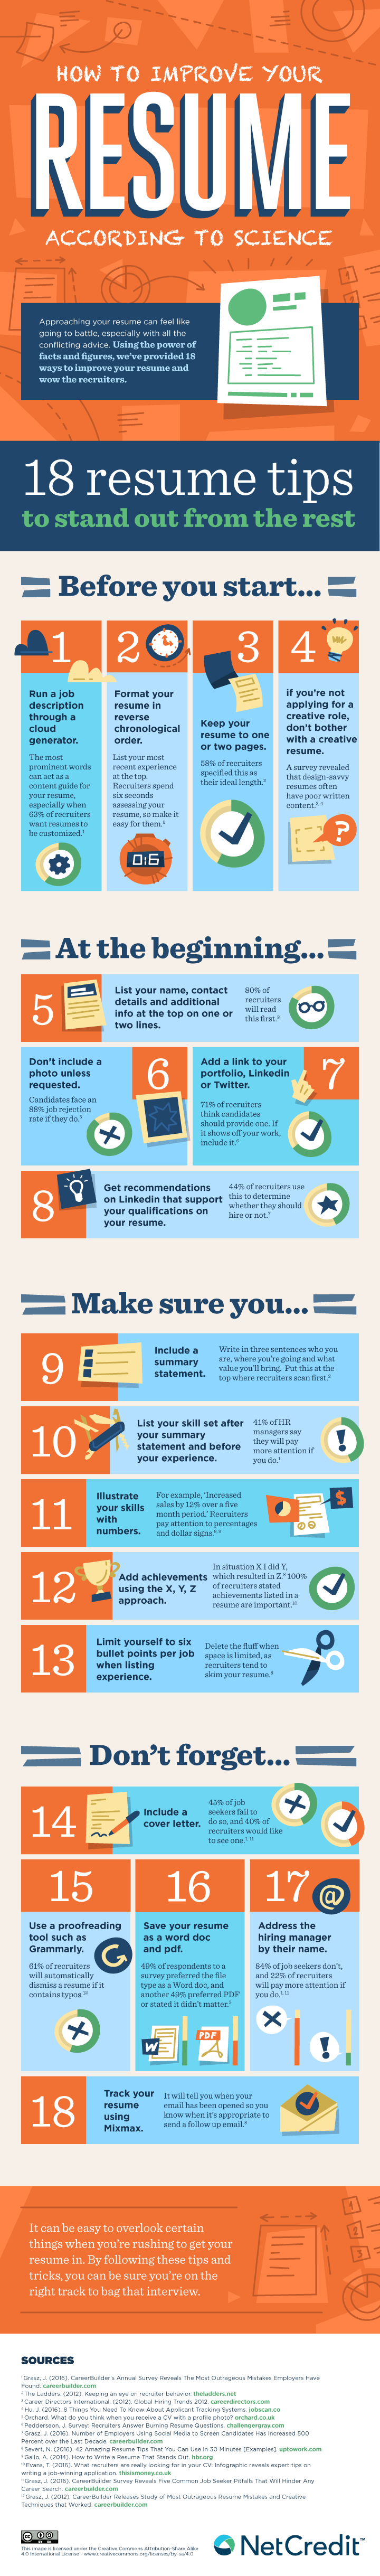 how-to-improve-your-resume-according-to-science_58f4e19a3097a